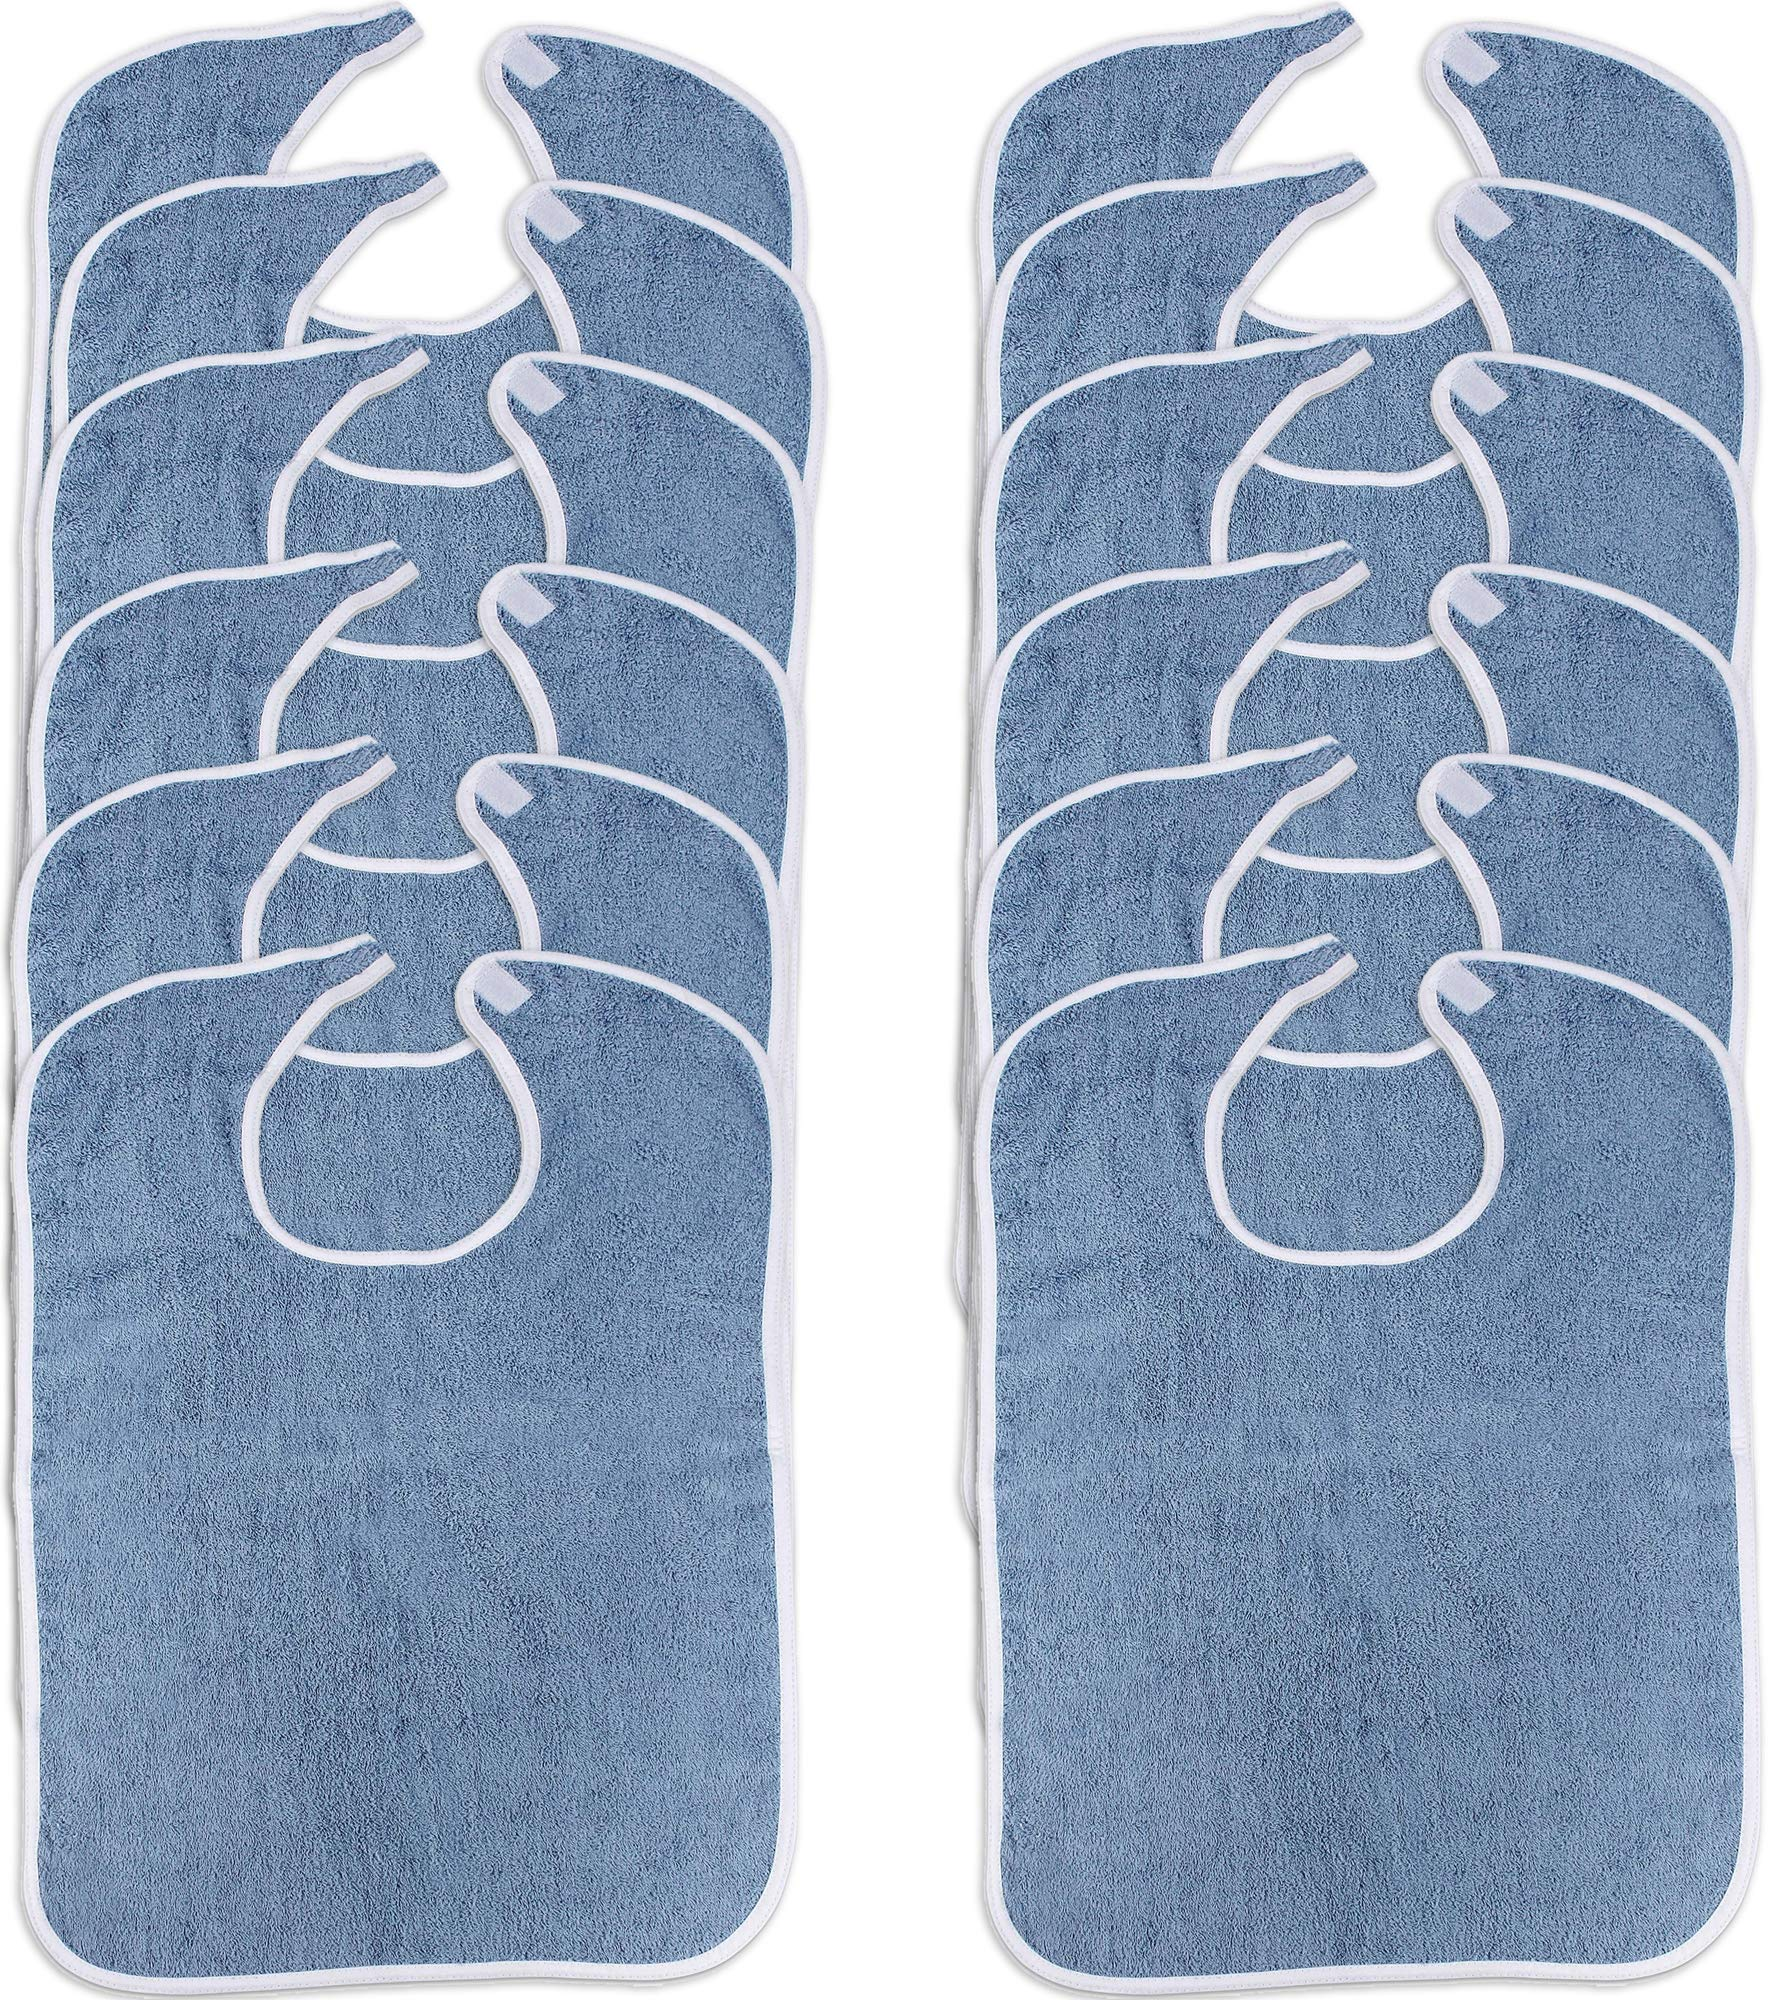 Utopia Towels Premium Quality Adult Terry Cloth Bibs (Pack of 12, Blue) by Utopia Towels